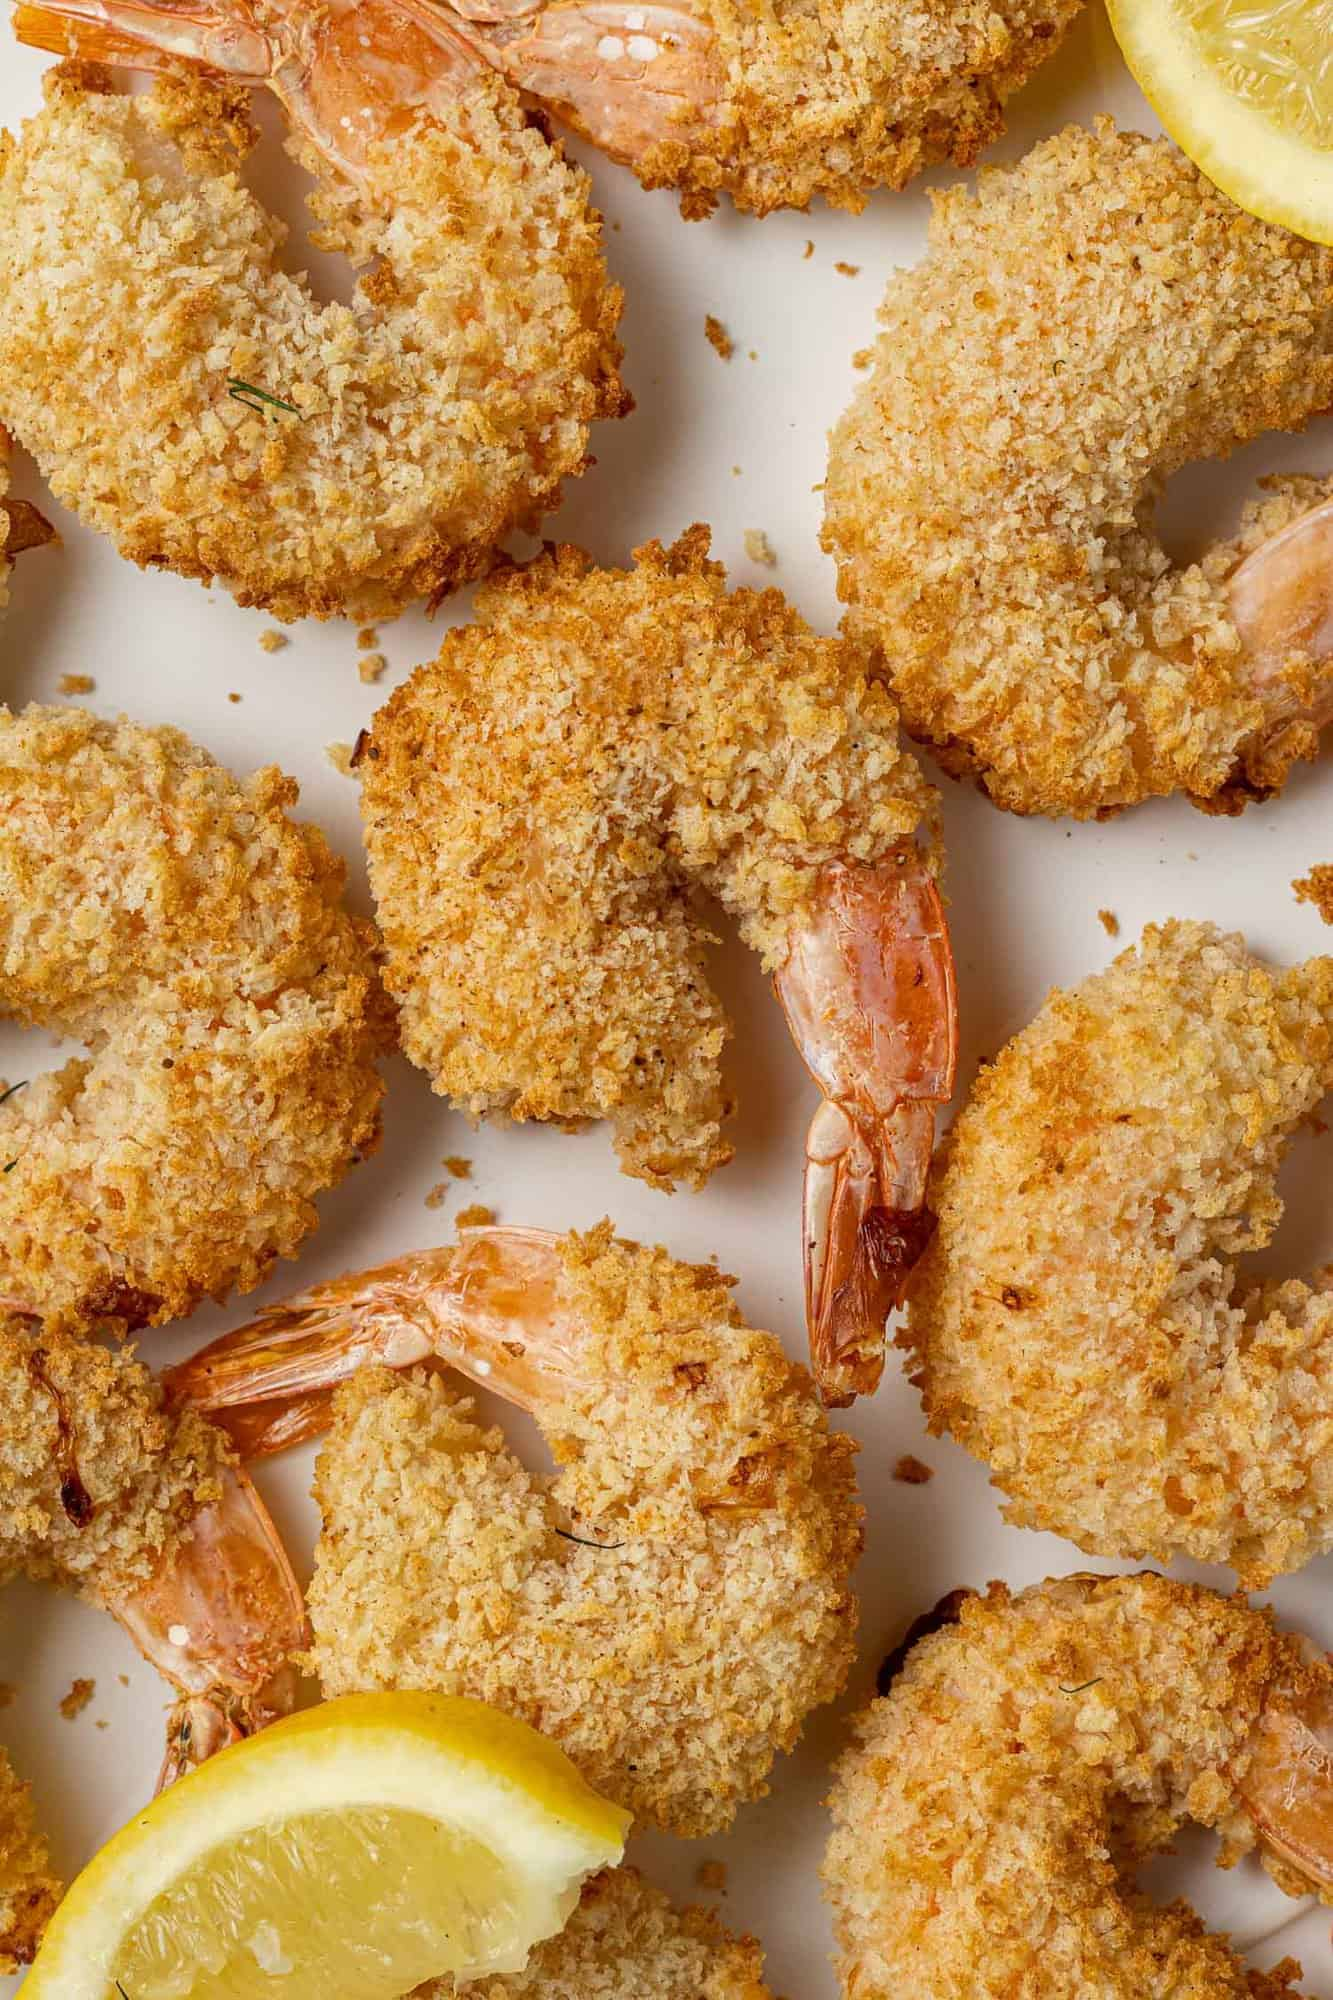 Perfectly breaded shrimp laid out in a single layer with a couple lemon slices.